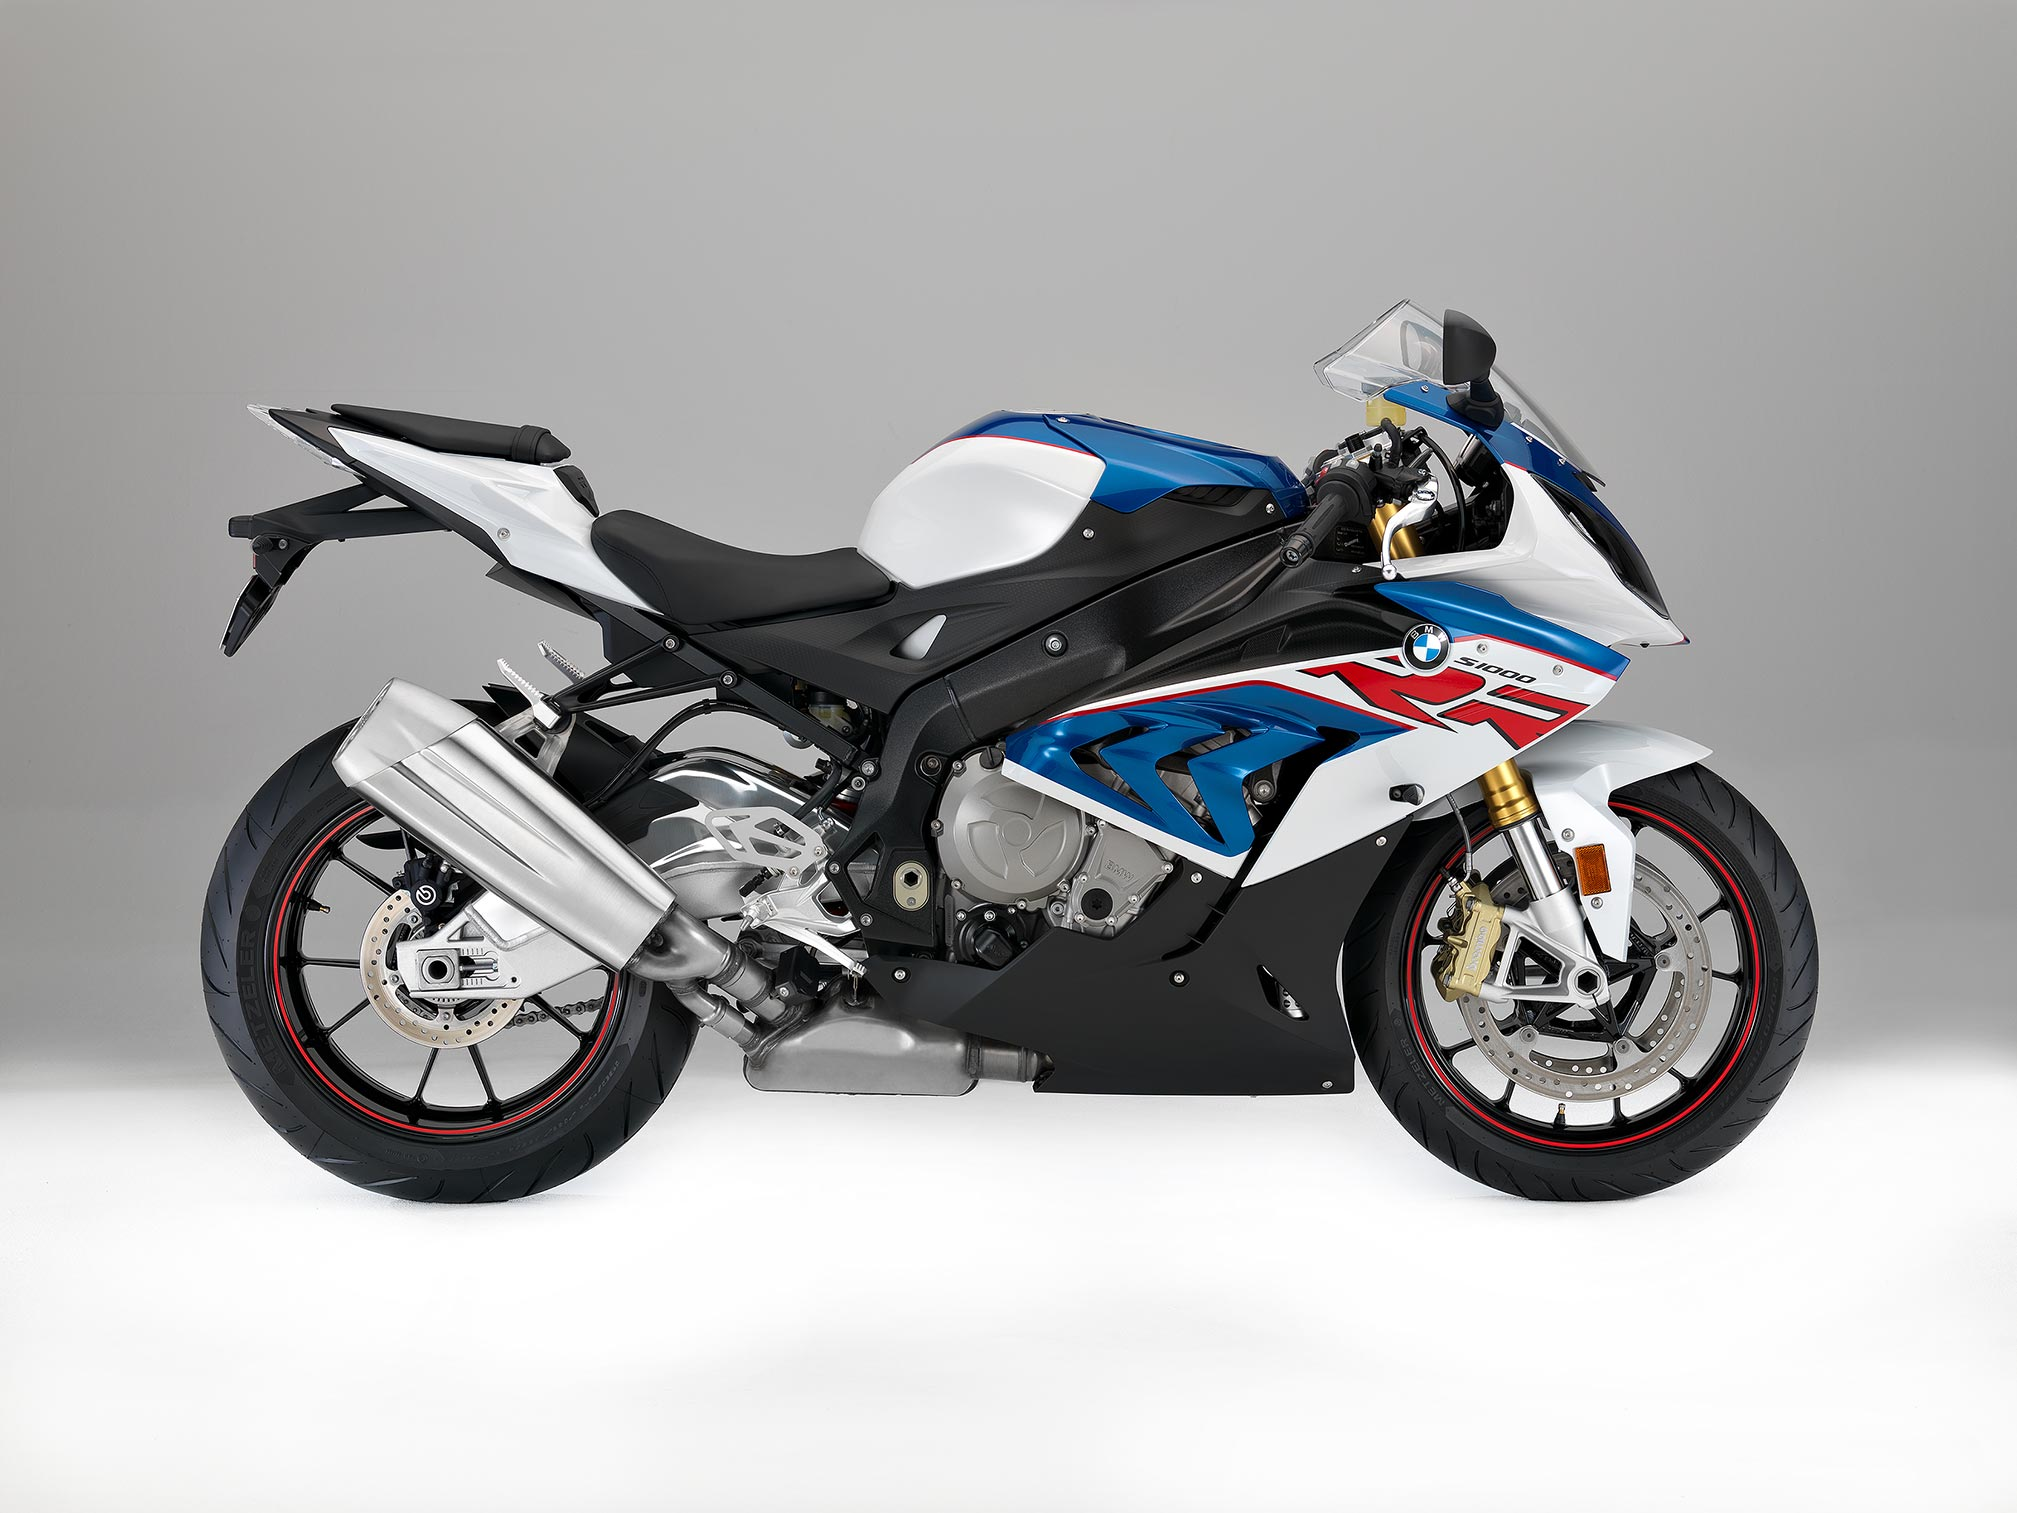 2018 bmw s1000rr. interesting 2018 2017 bmw s1000rr with 2018 bmw s1000rr s